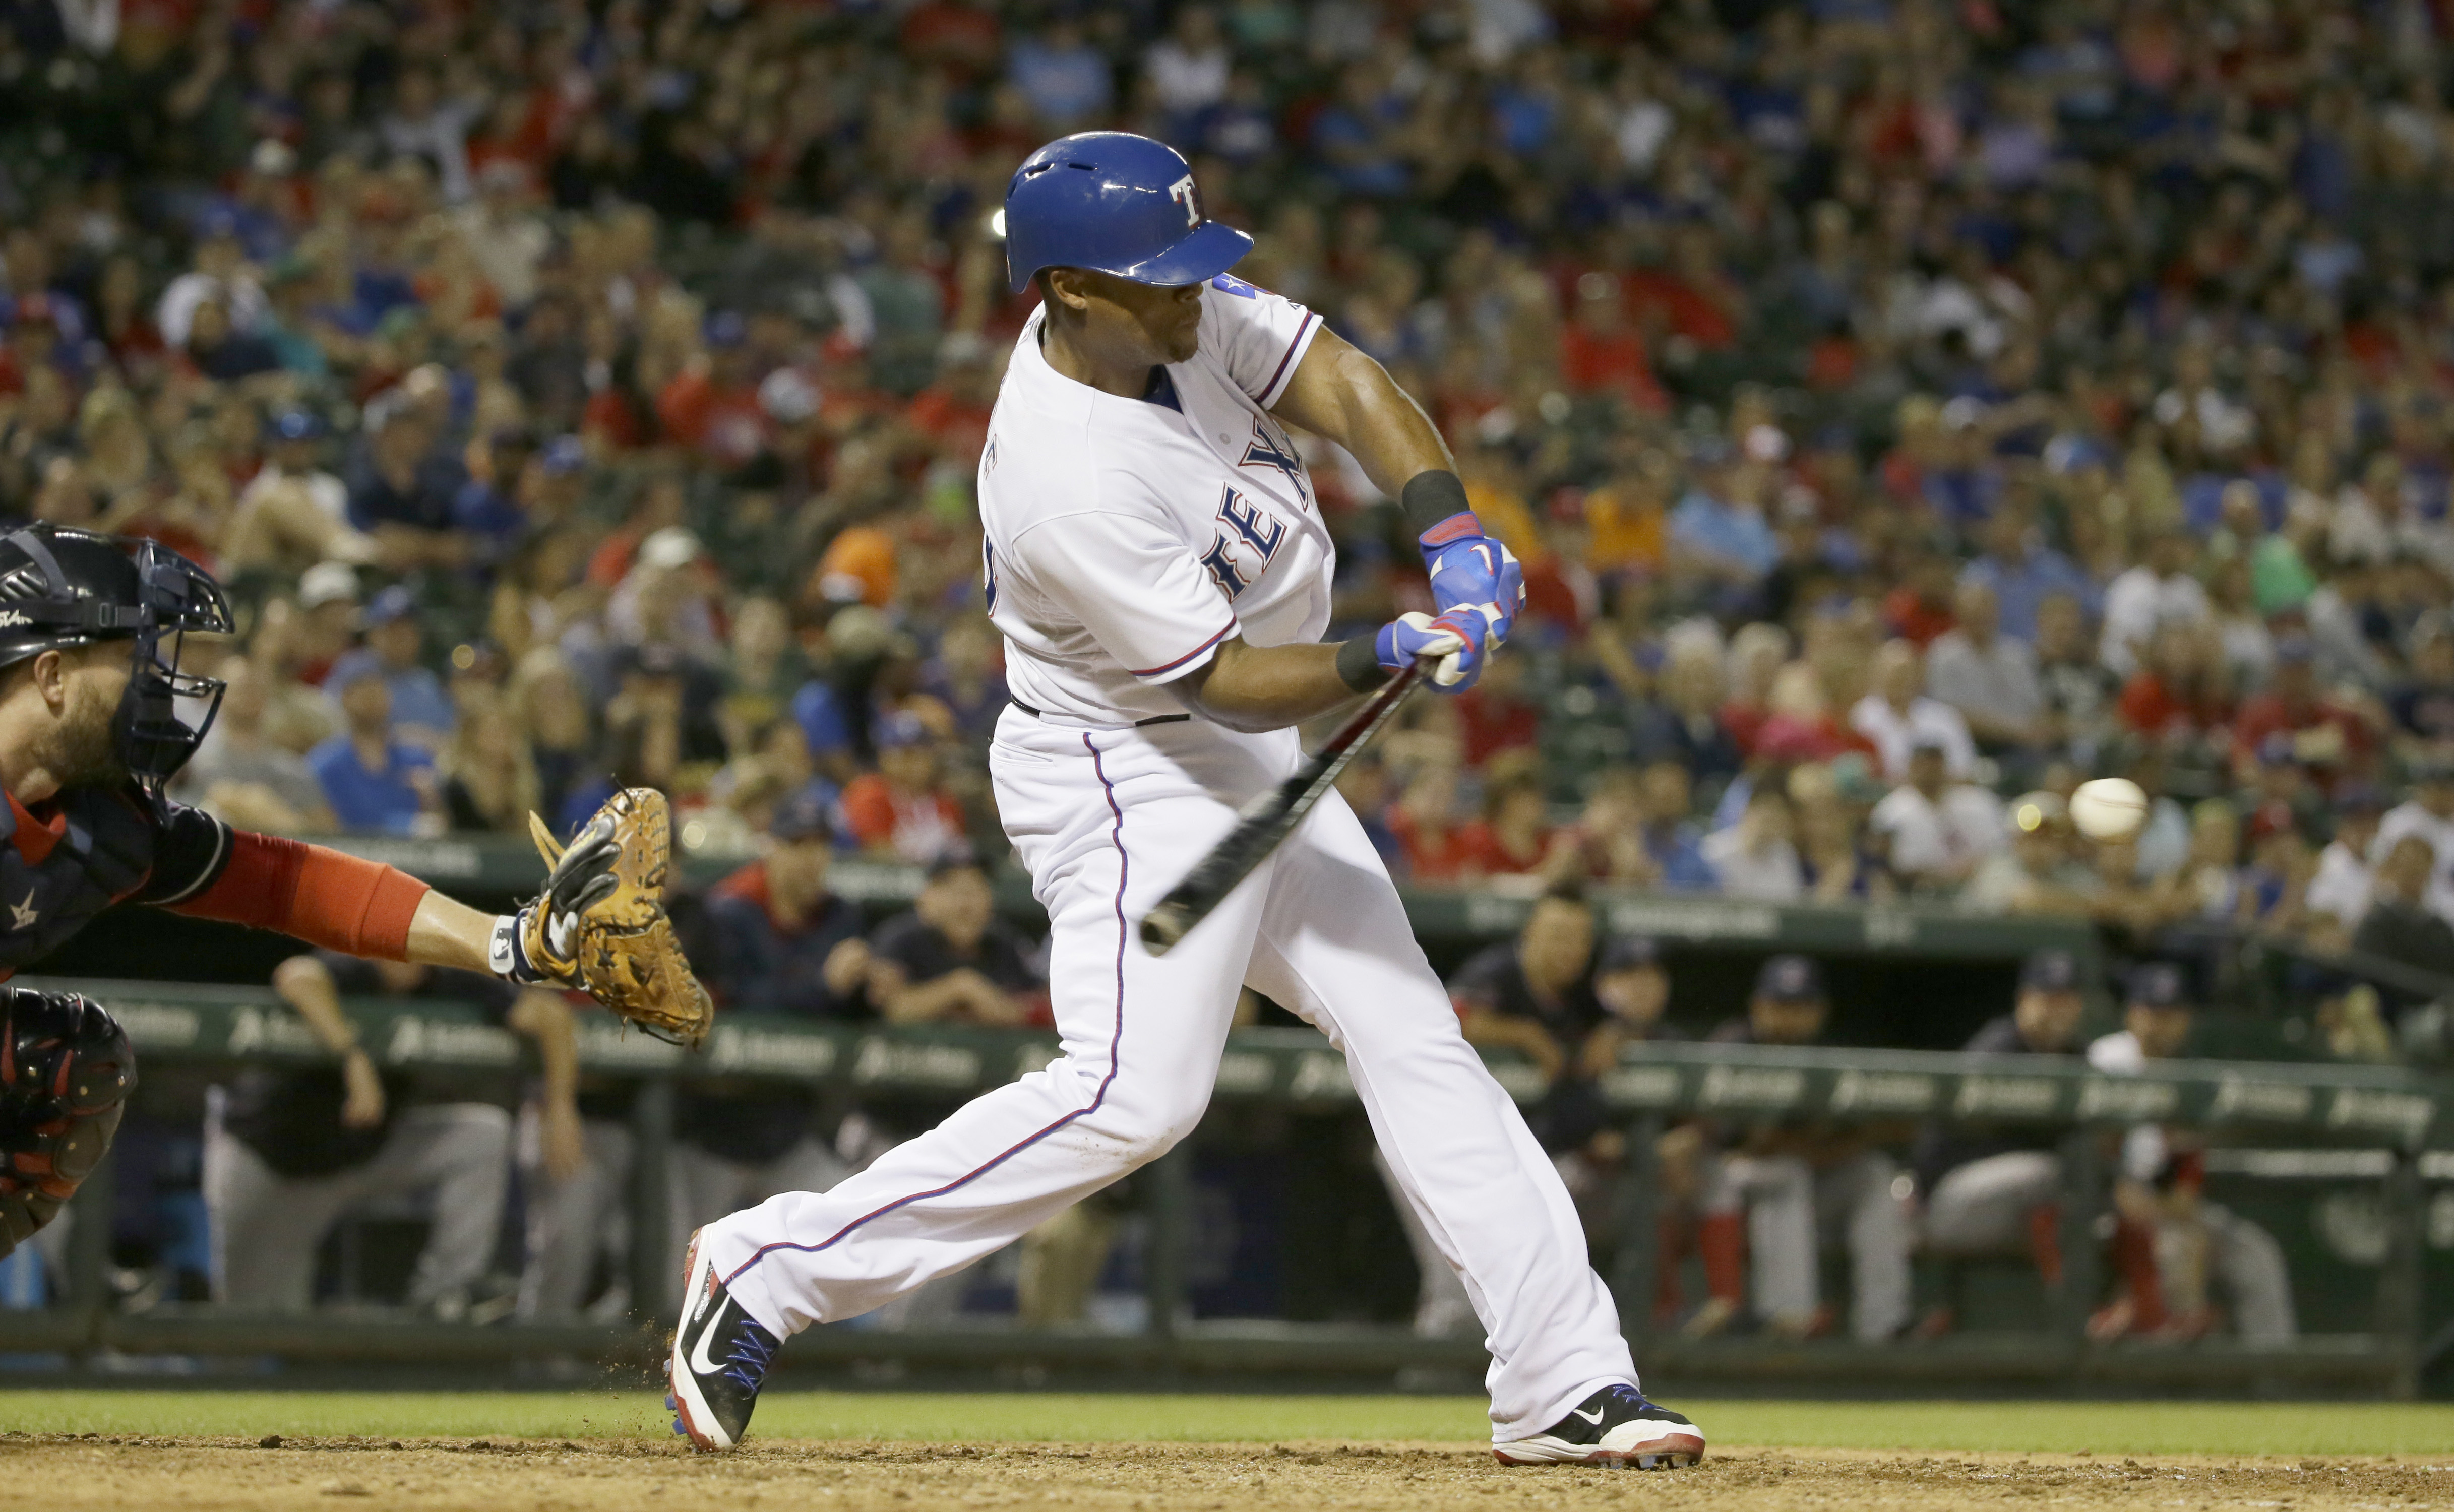 Texas Rangers Adrian Beltre, right, turns on the ball in front of Cleveland Indians catcher Brett Hayes during the seventh inning of a baseball game in Arlington, Texas, Friday, May 15, 2015. (AP Photo/LM Otero)